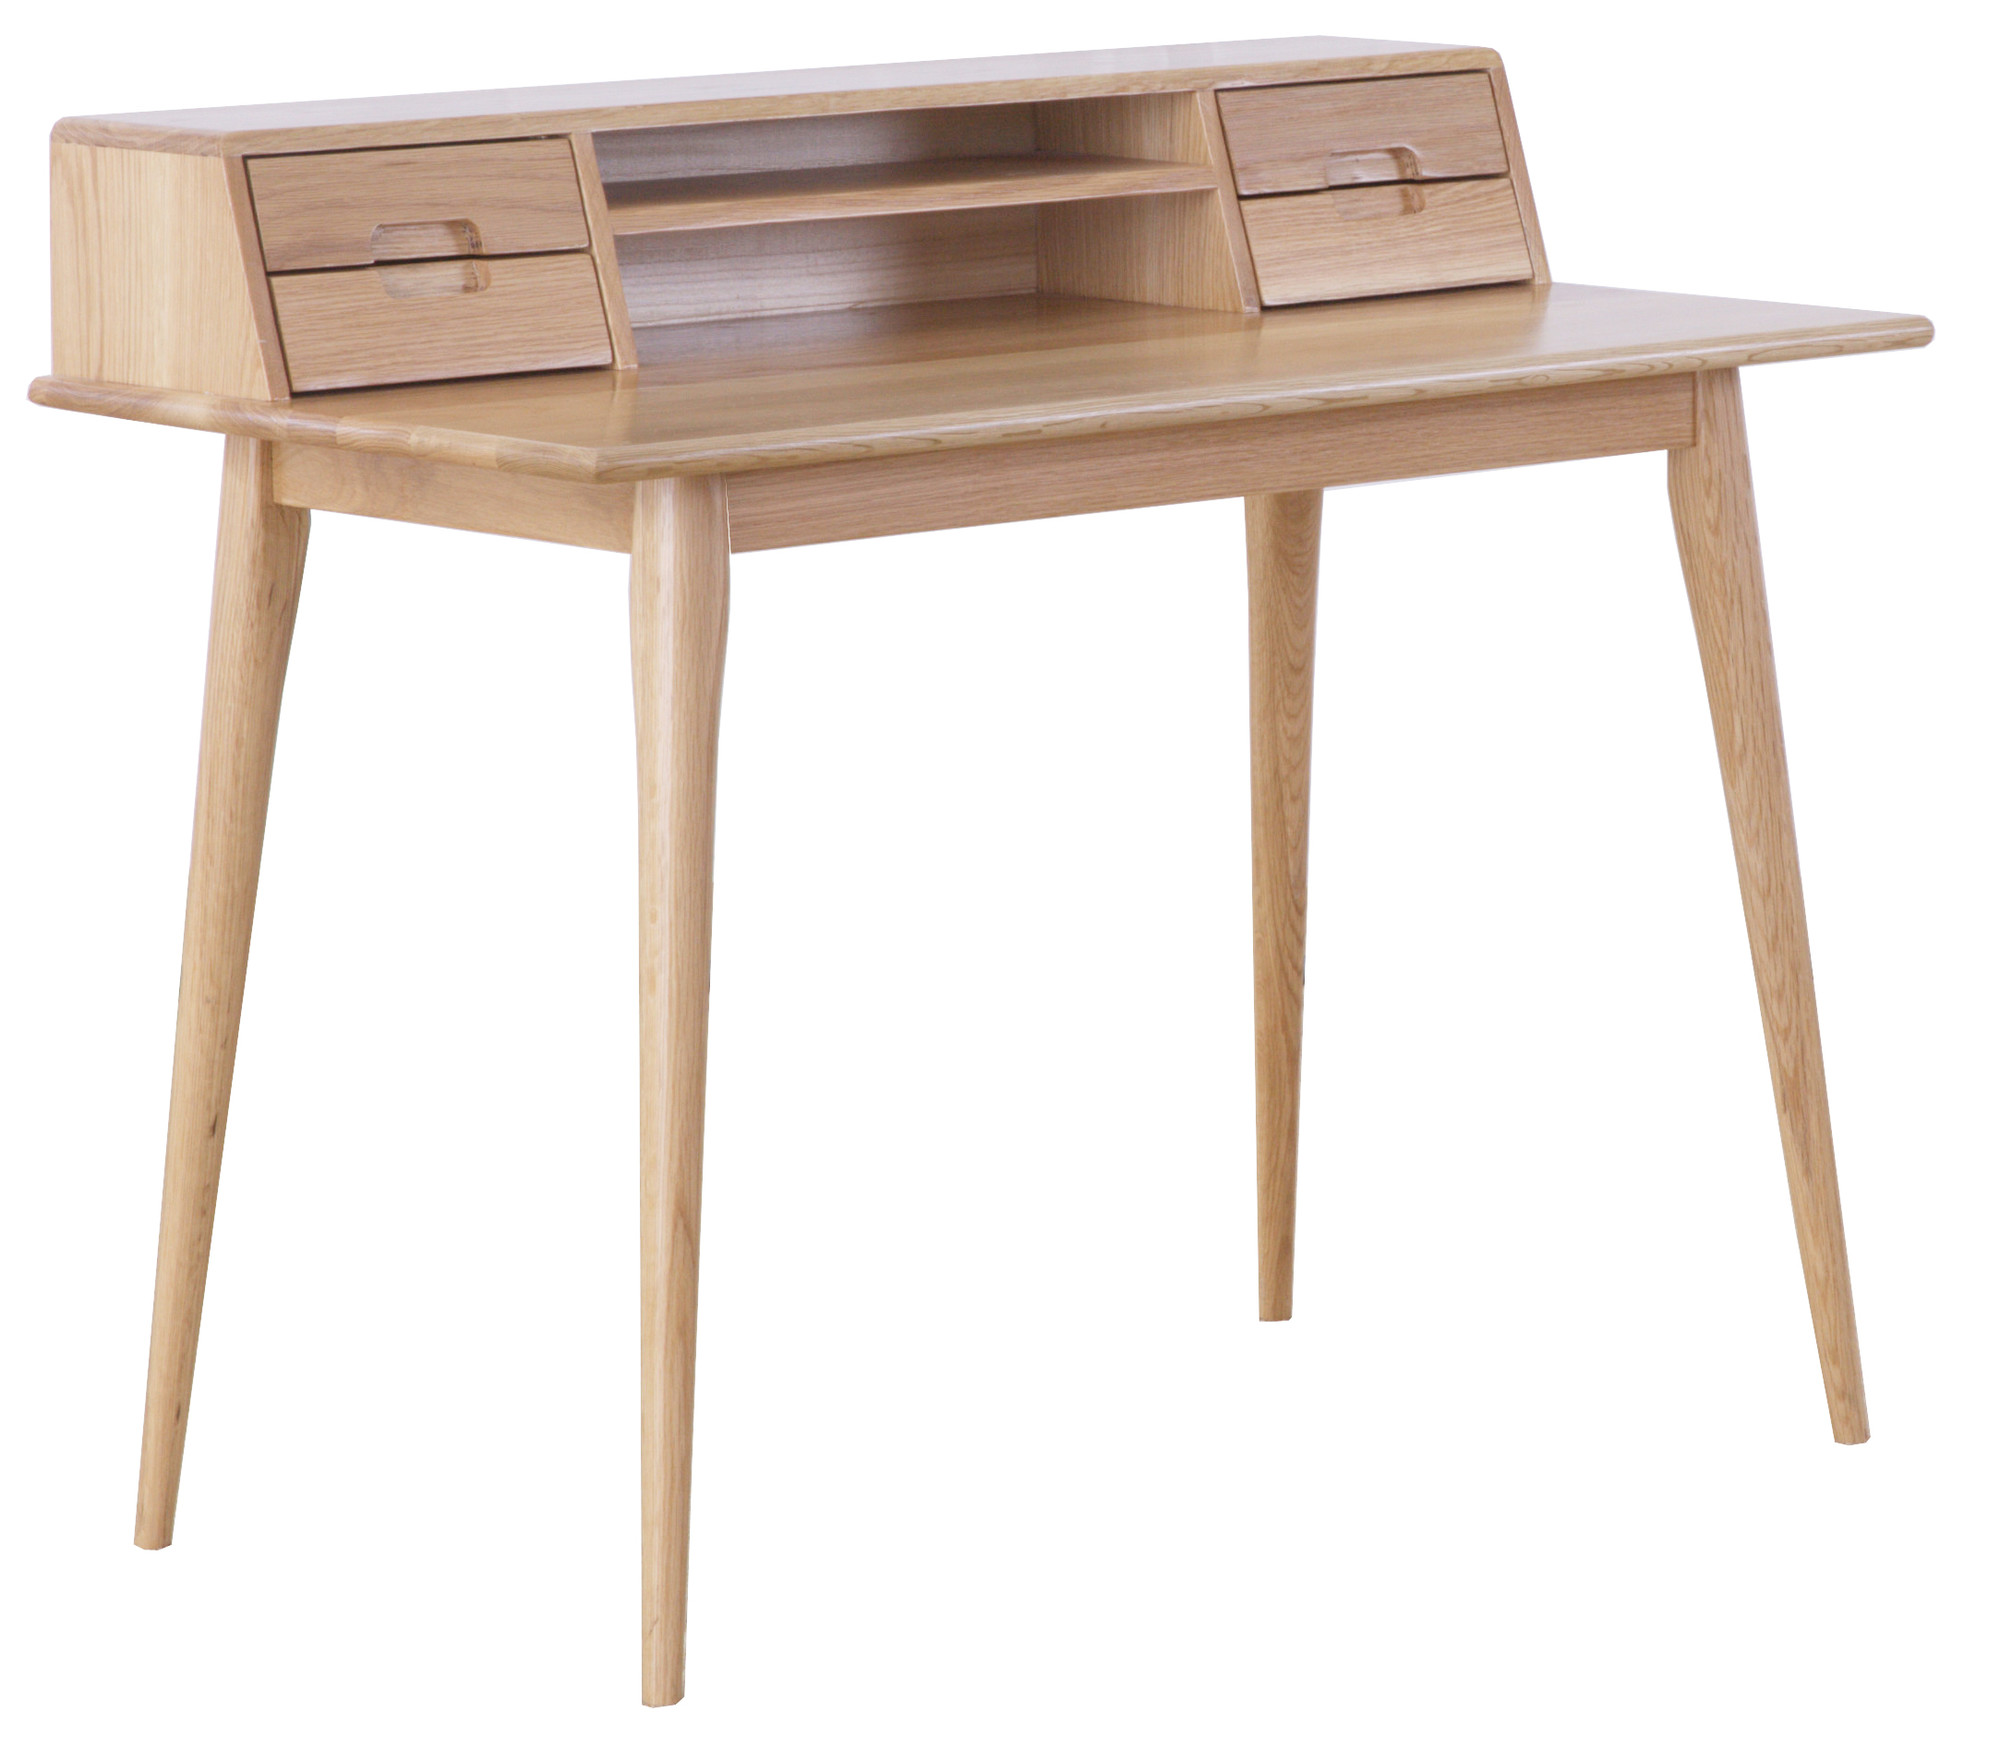 New milan direct oscar scandinavian style desk for Nordic style furniture